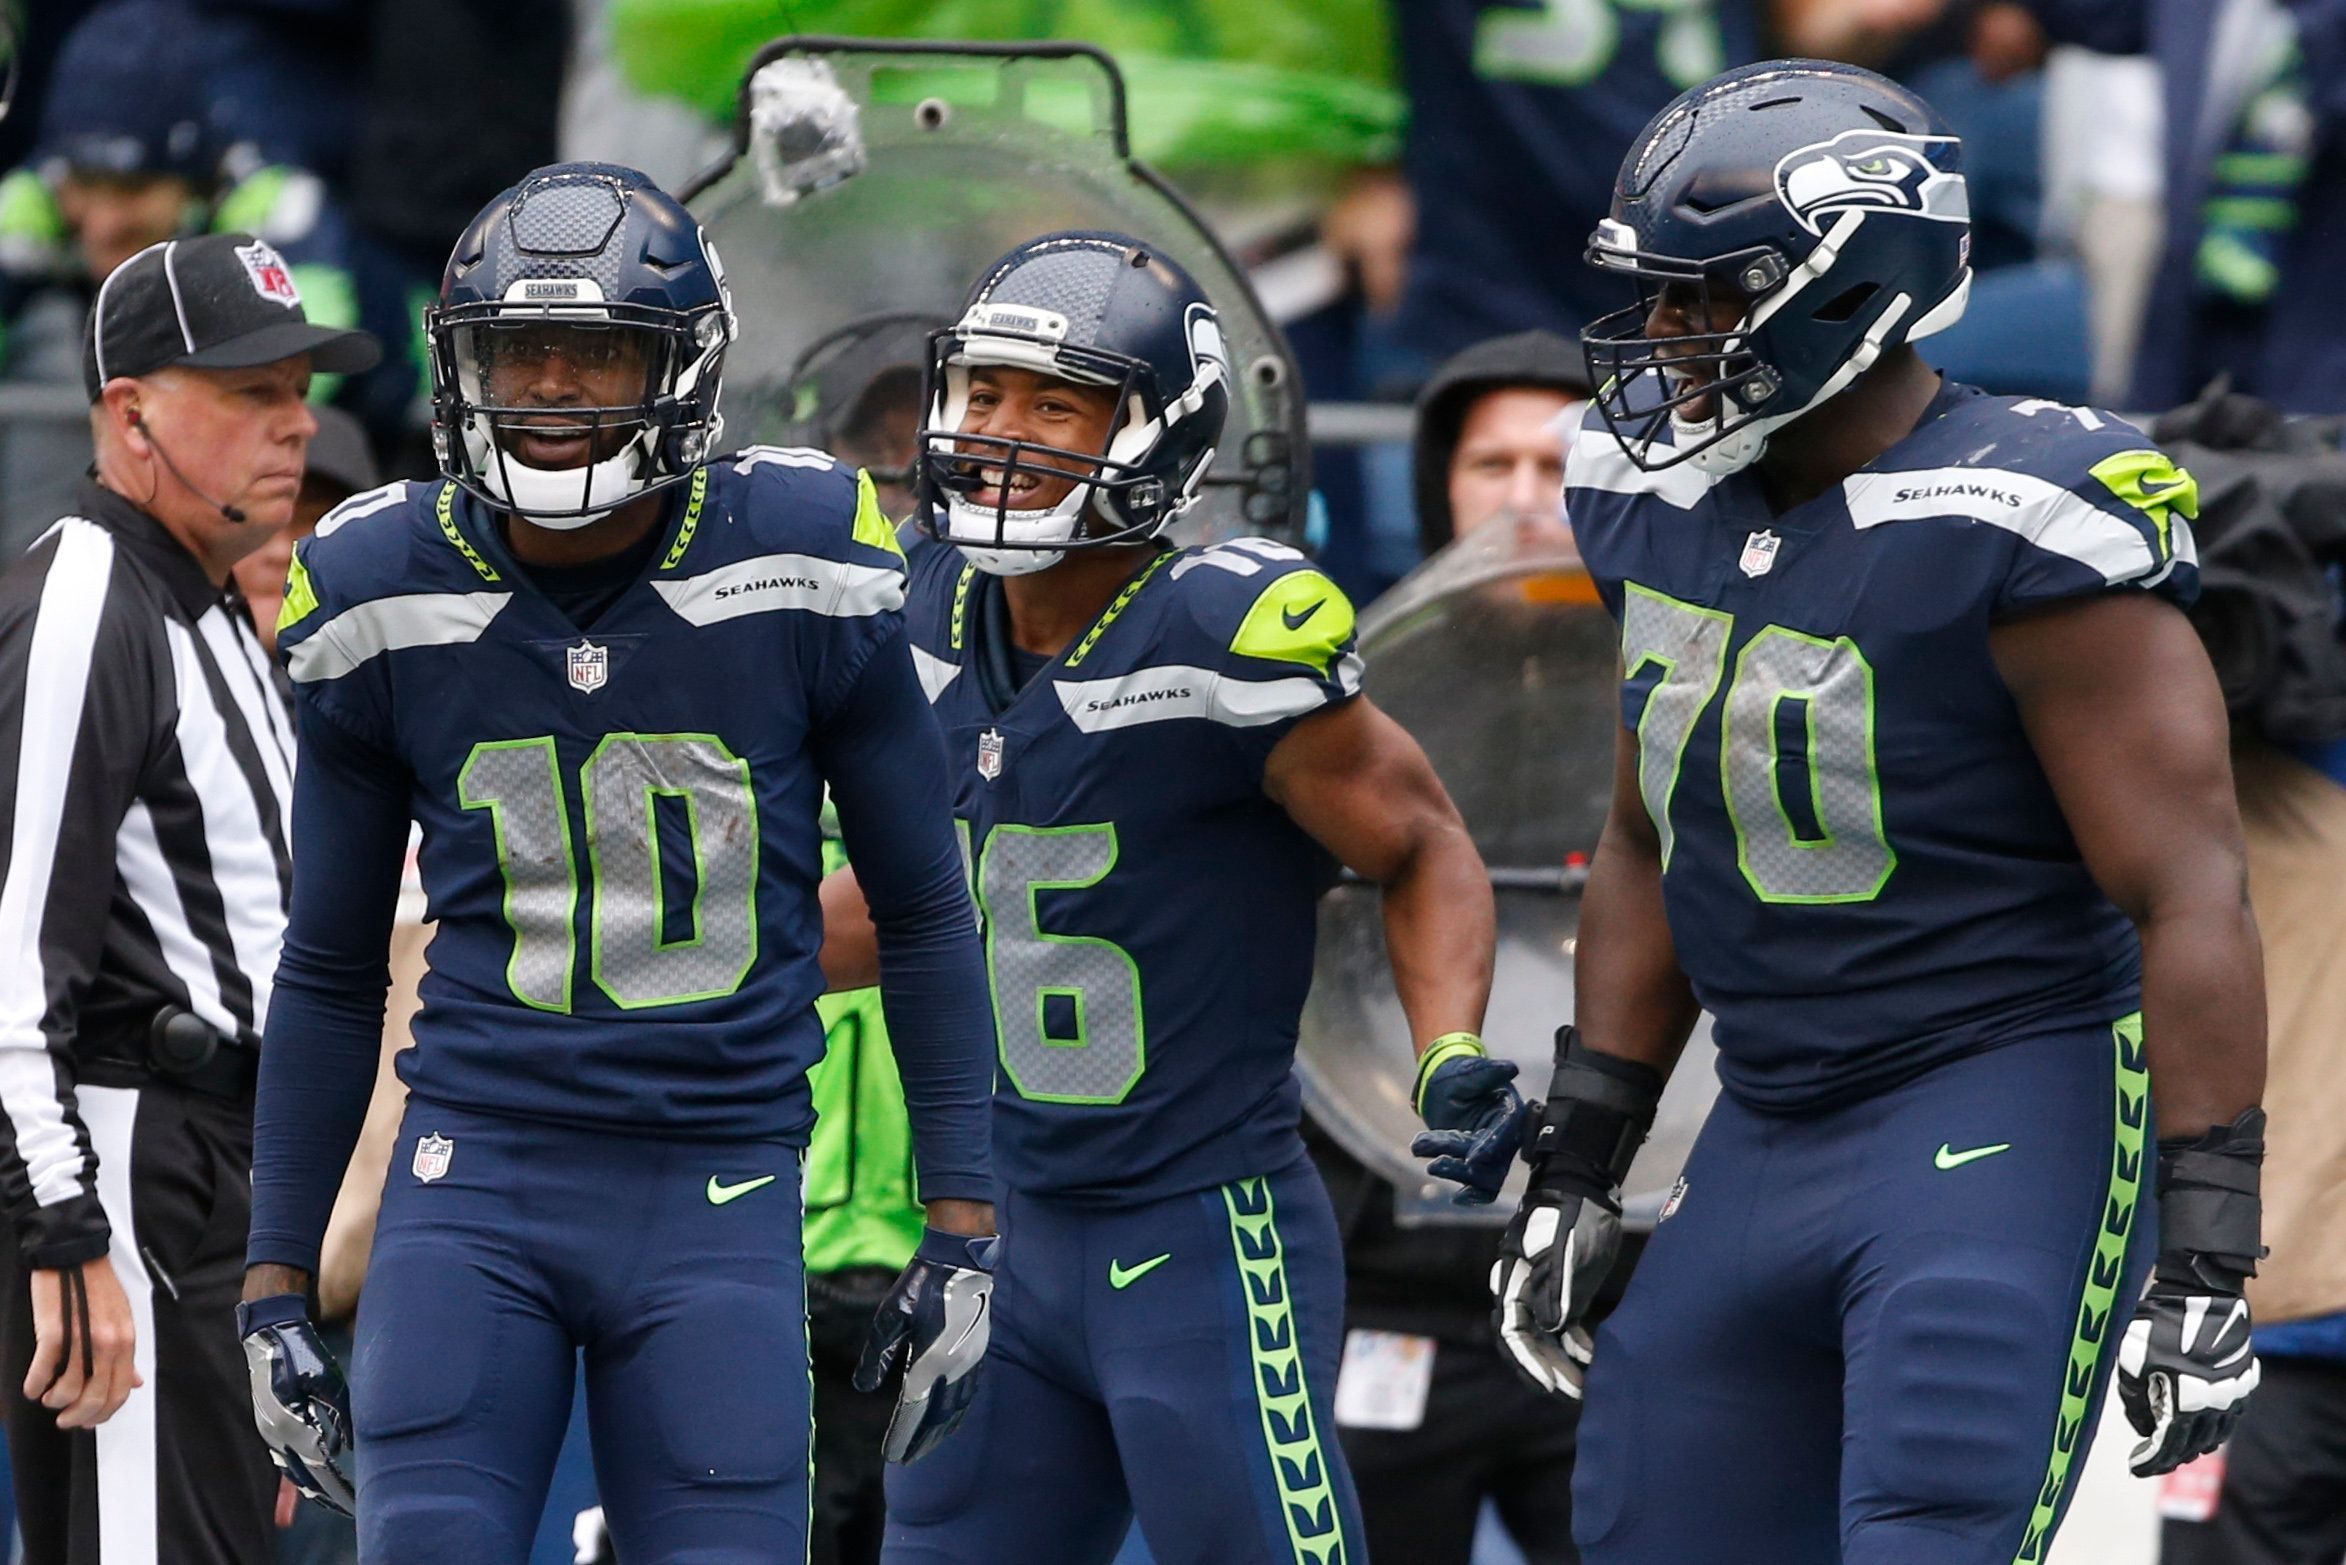 Sep 17, 2017; Seattle, WA, USA; Seattle Seahawks wide receiver Tyler Lockett (16) celebrates with wide receiver Paul Richardson (10) and offensive tackle Rees Odhiambo (70) after catching a touchdown pass against the San Francisco 49ers during the fourth quarter at CenturyLink Field. Mandatory Credit: Joe Nicholson-USA TODAY Sports